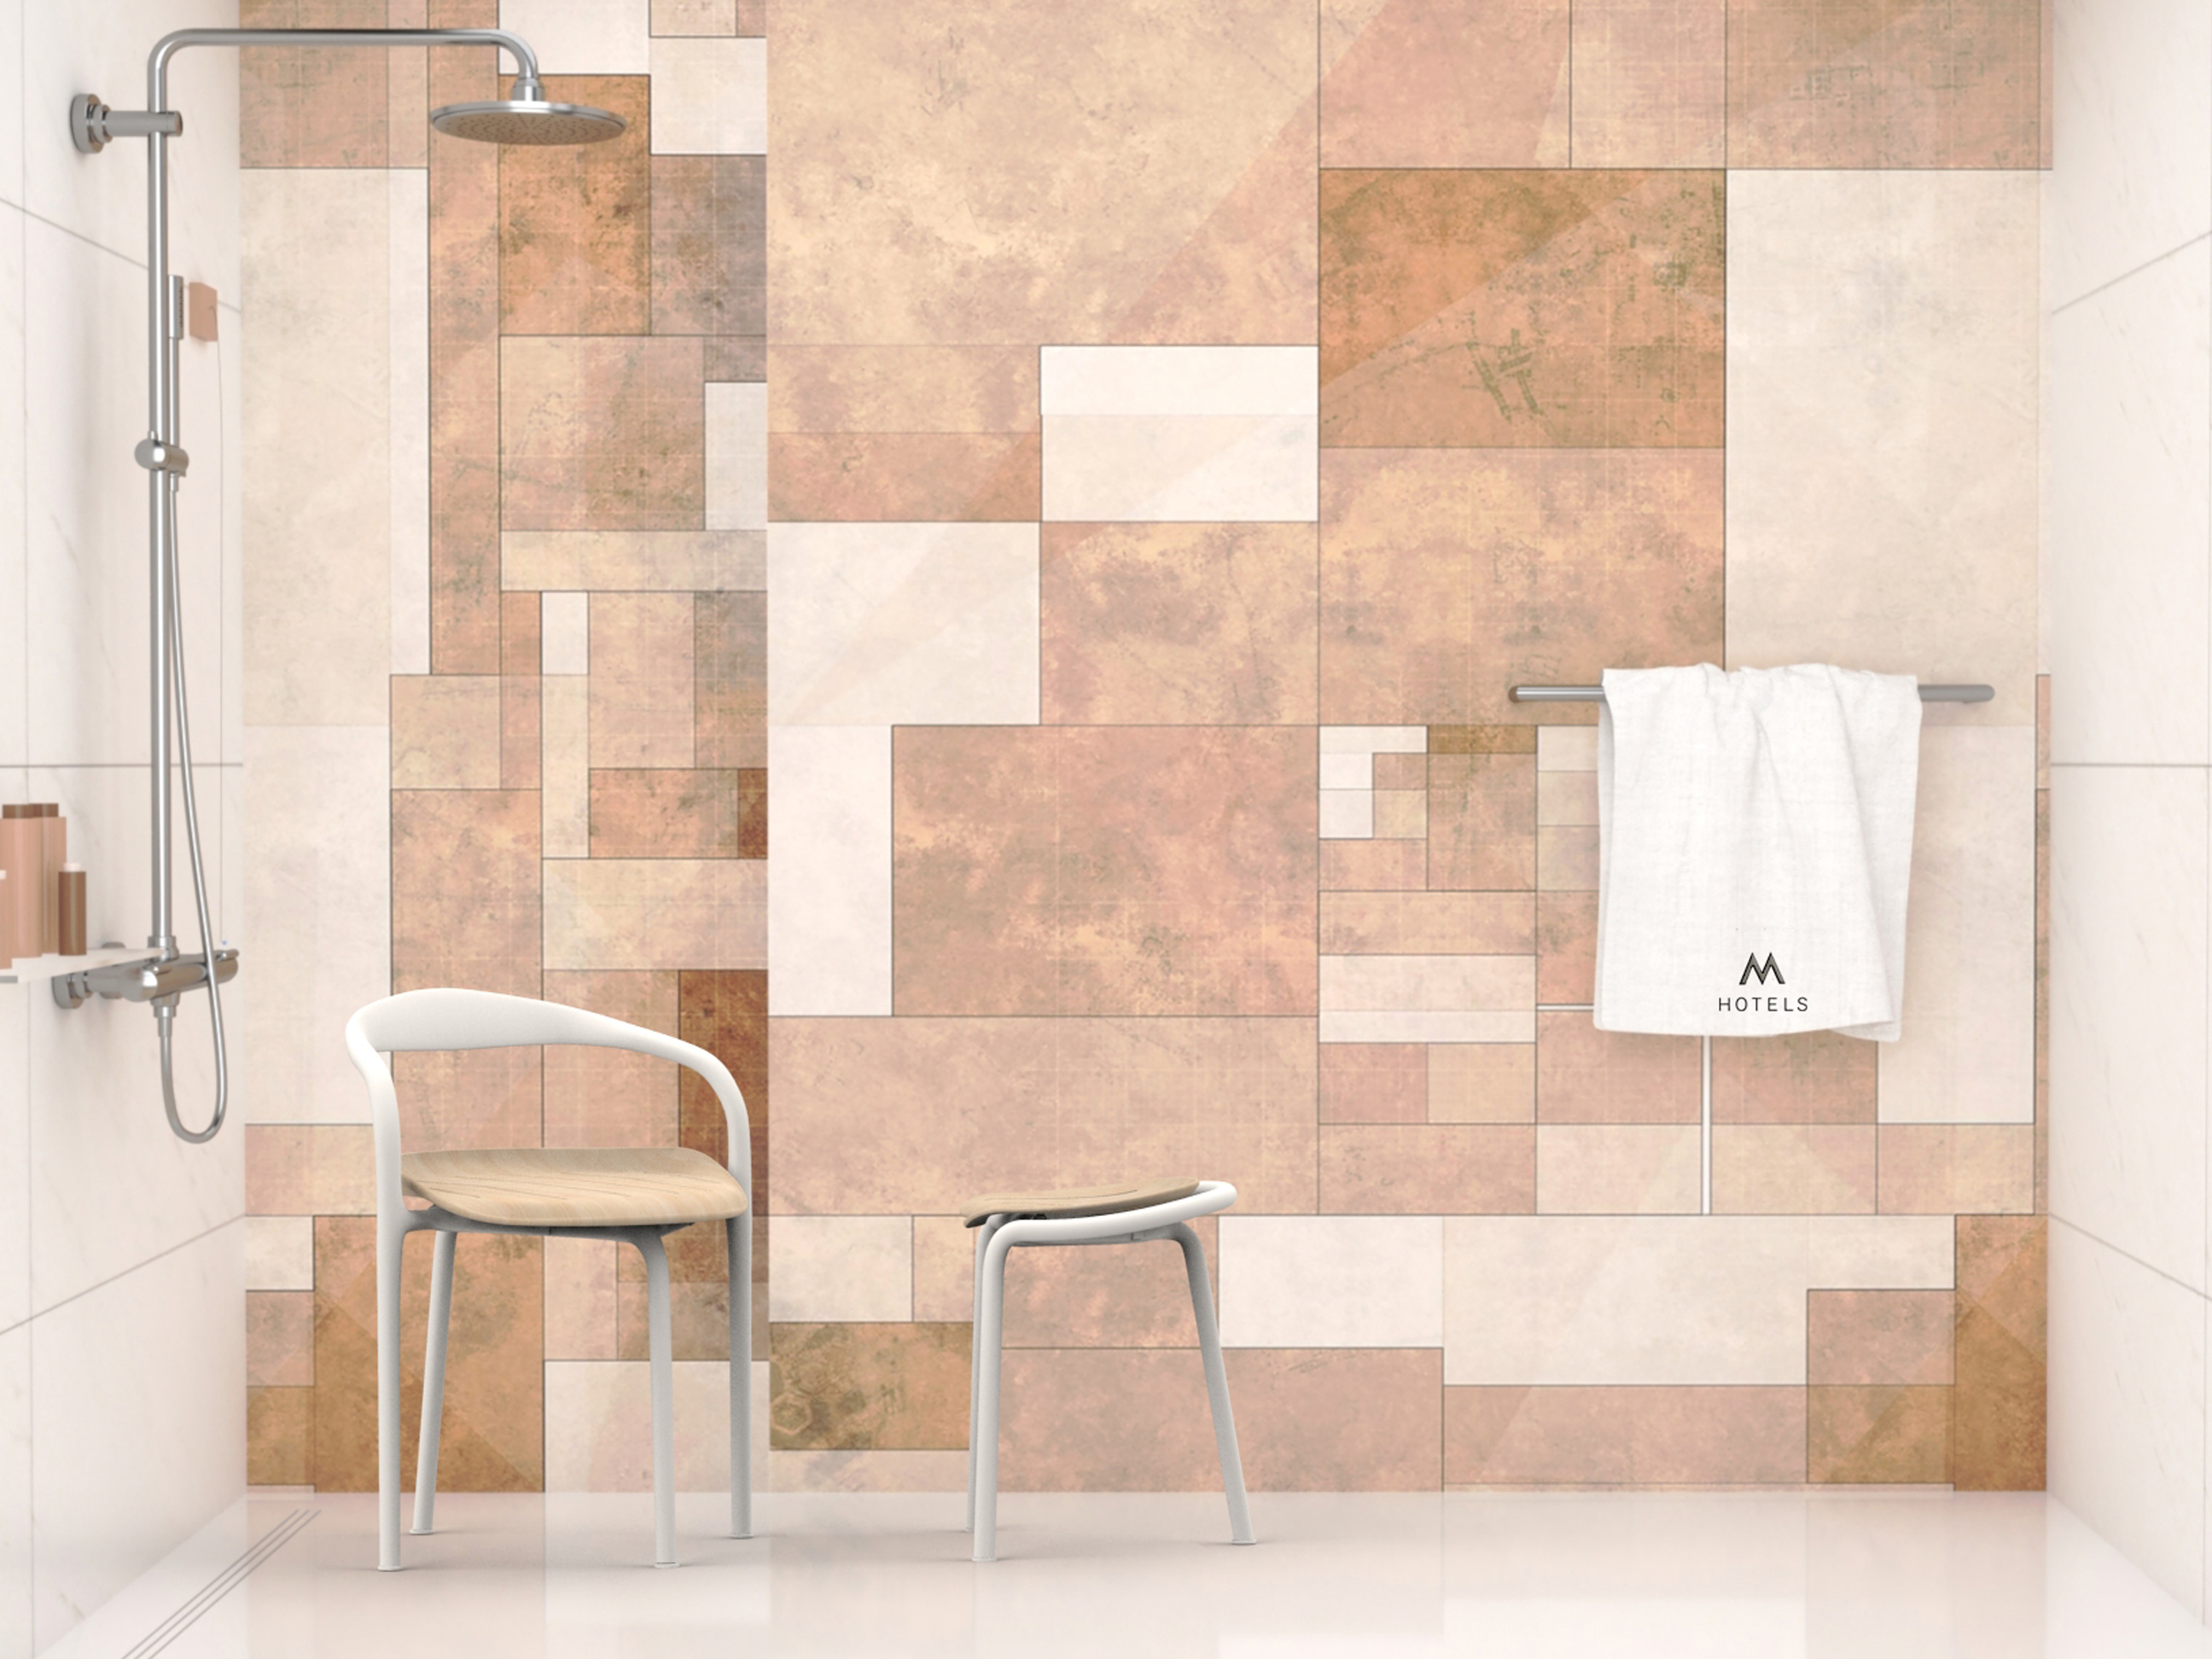 bagno Ordinary Collection con l'ordinary chair & stool